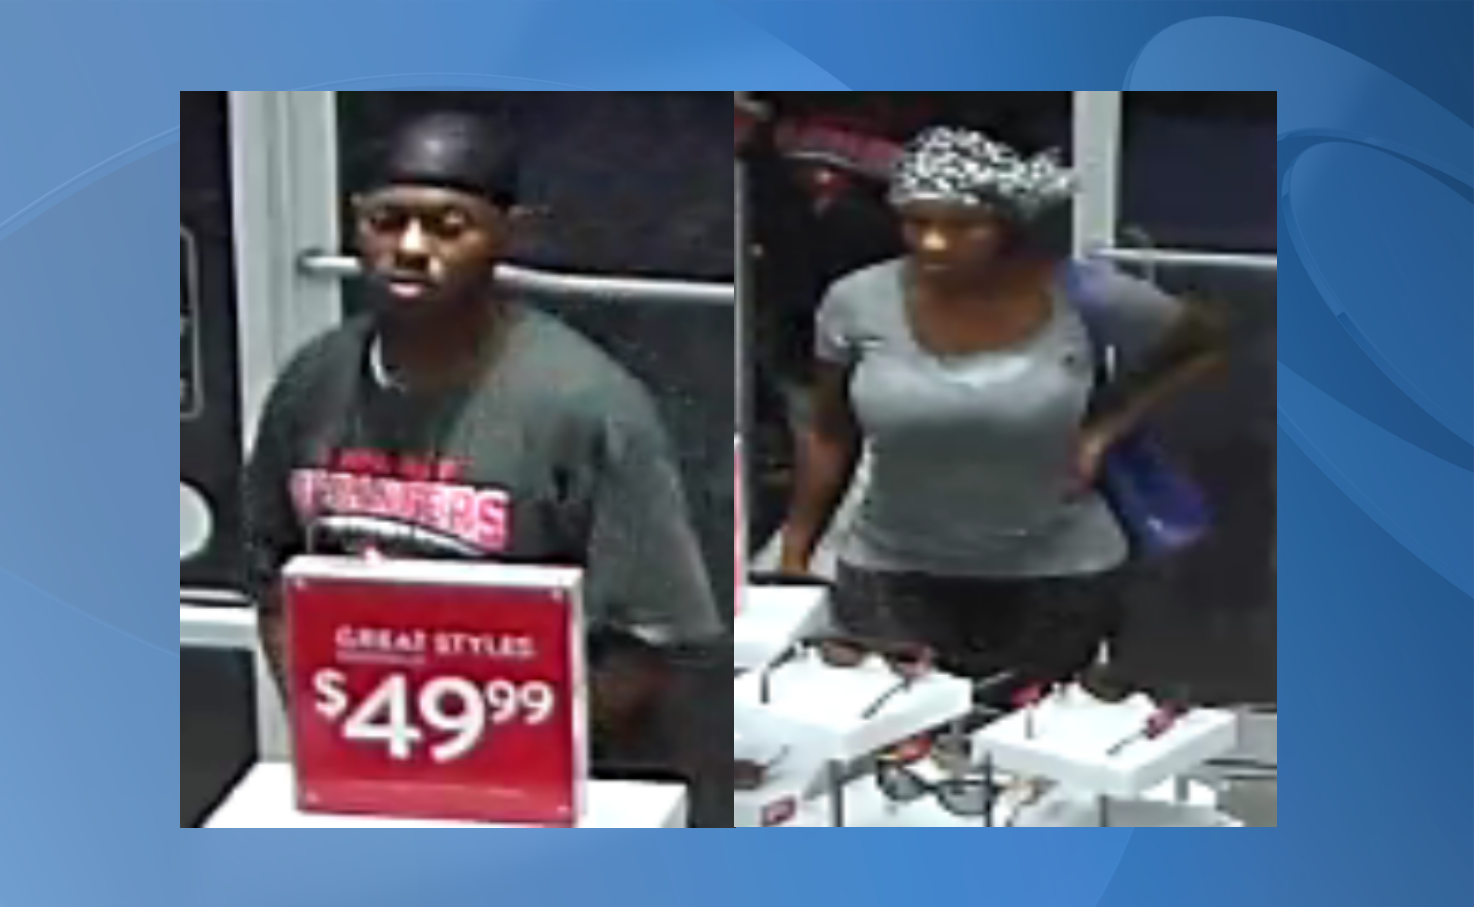 Couple Steals 21 Pairs Of Sunglasses From Miromar Outlets Store